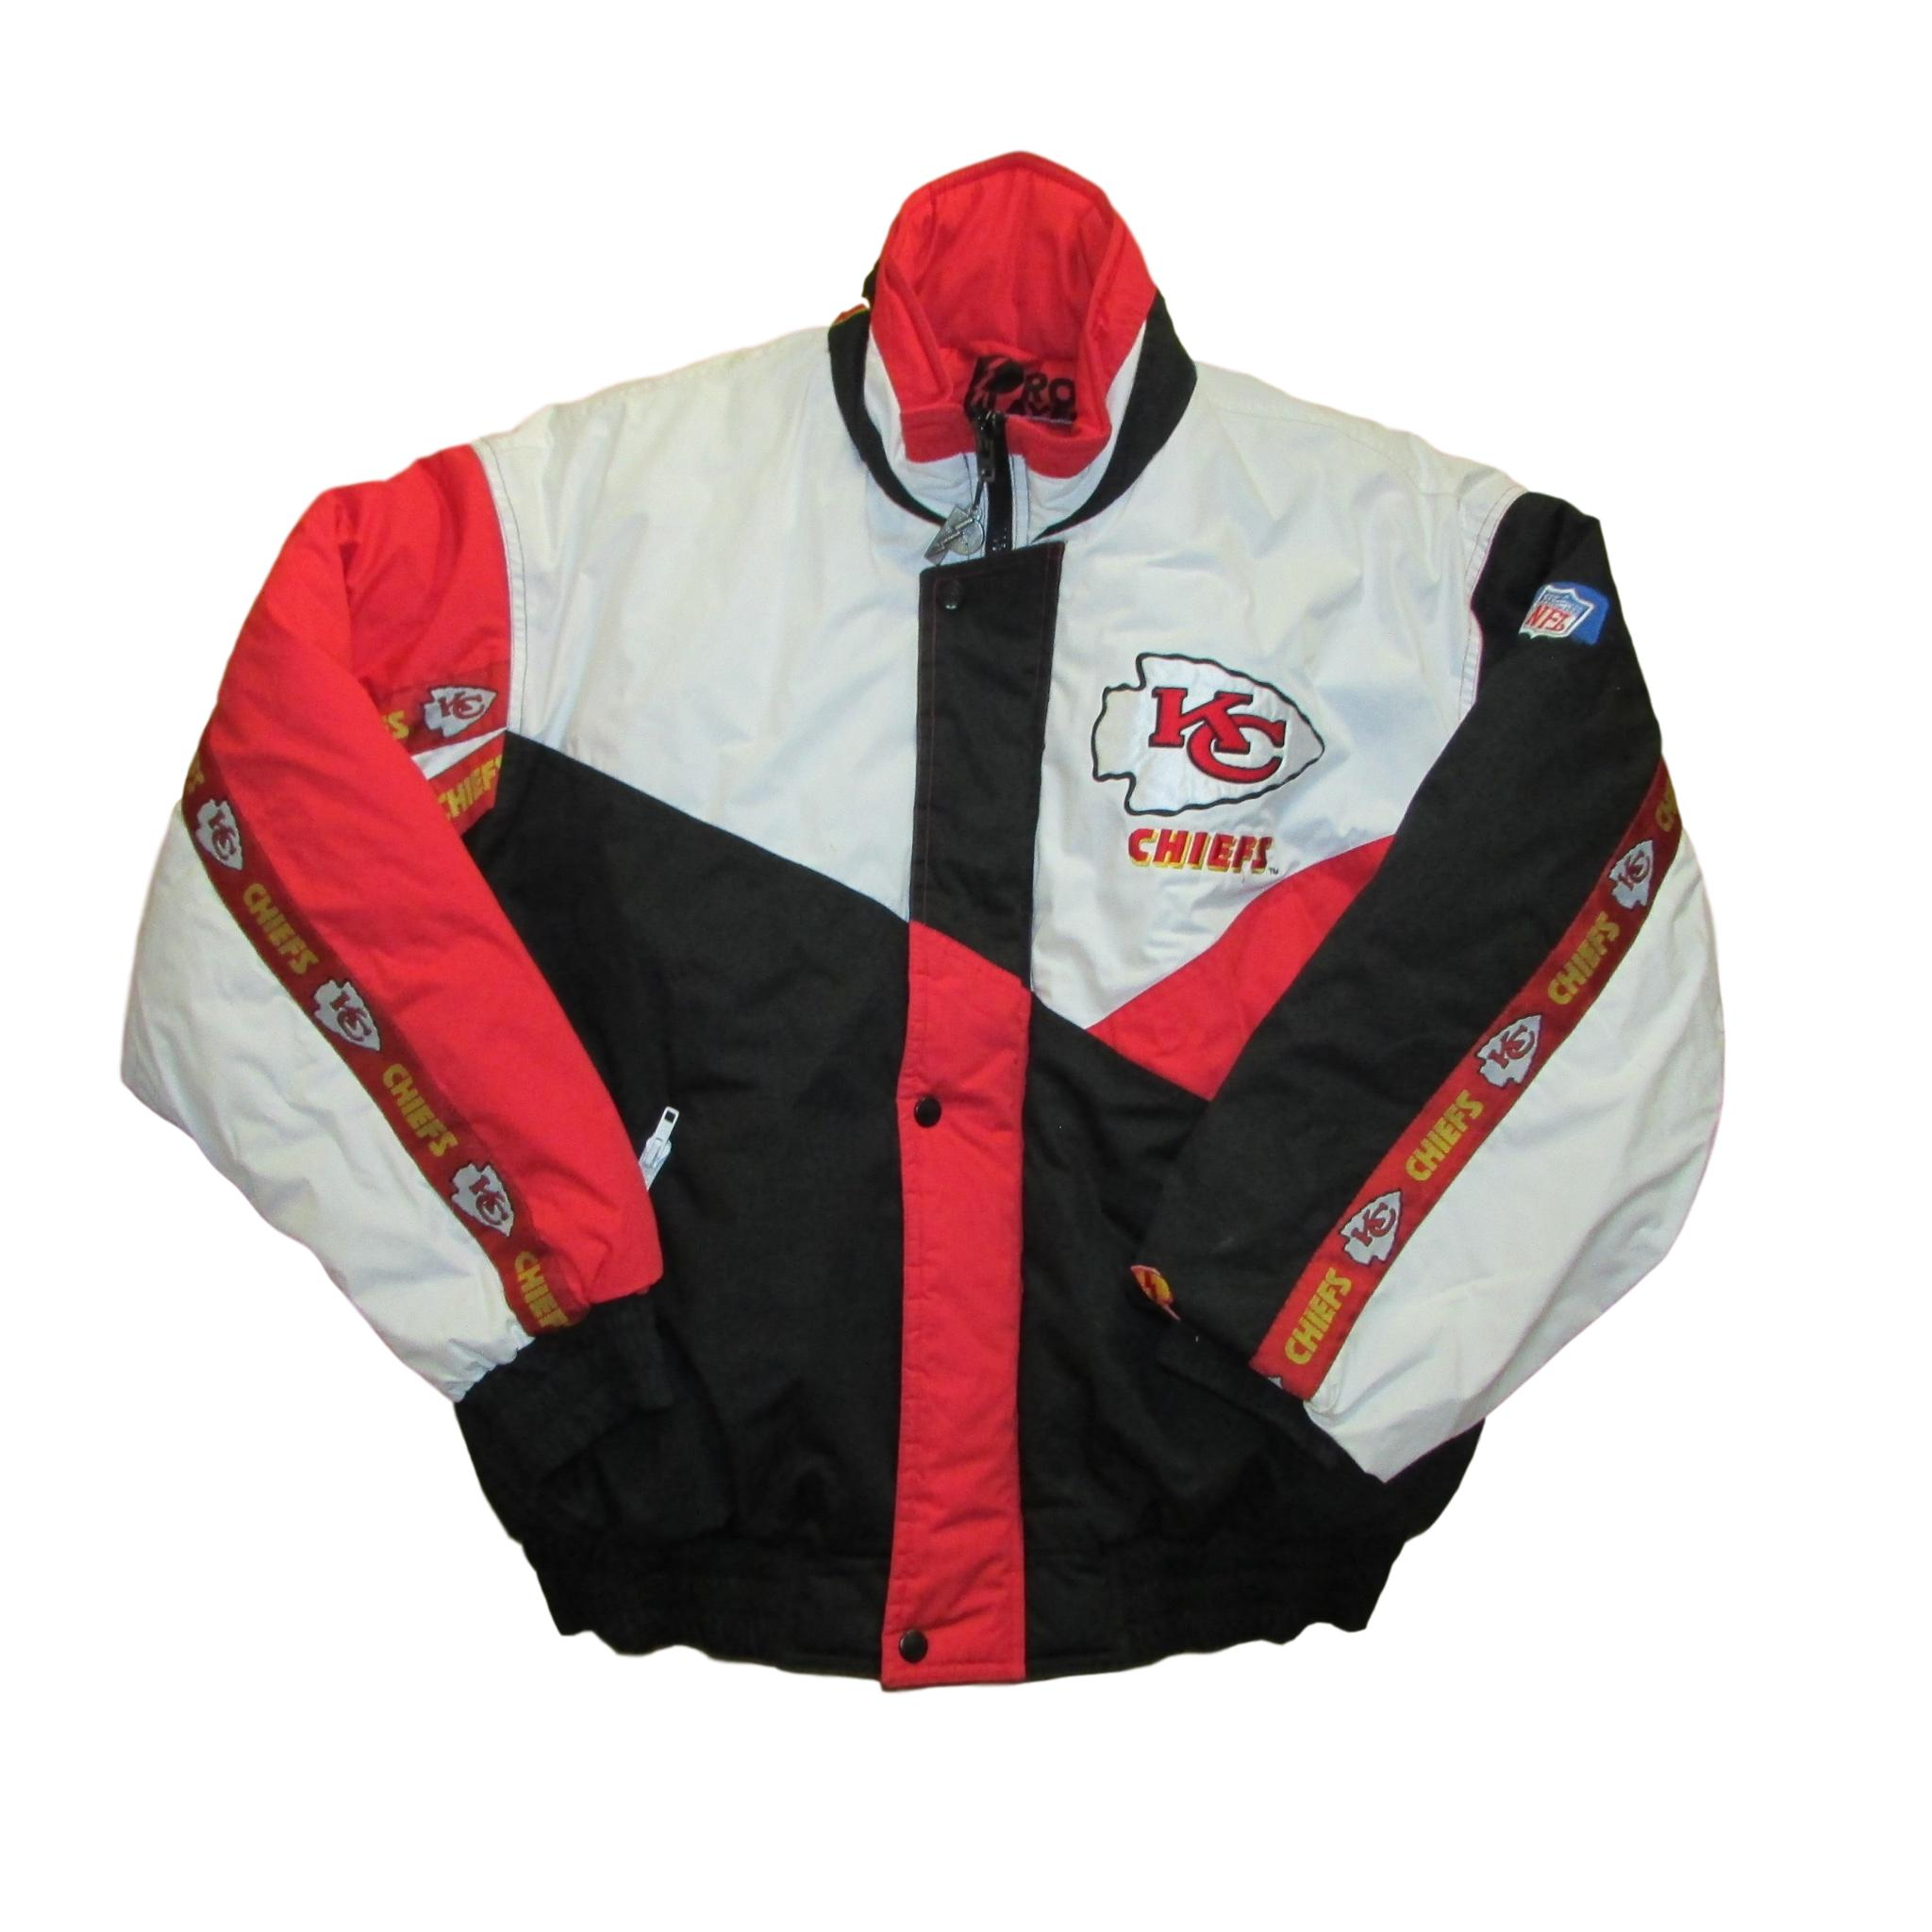 Kansas City Chiefs Heavy Duty Winter Jacket Pro Player Football Sz M